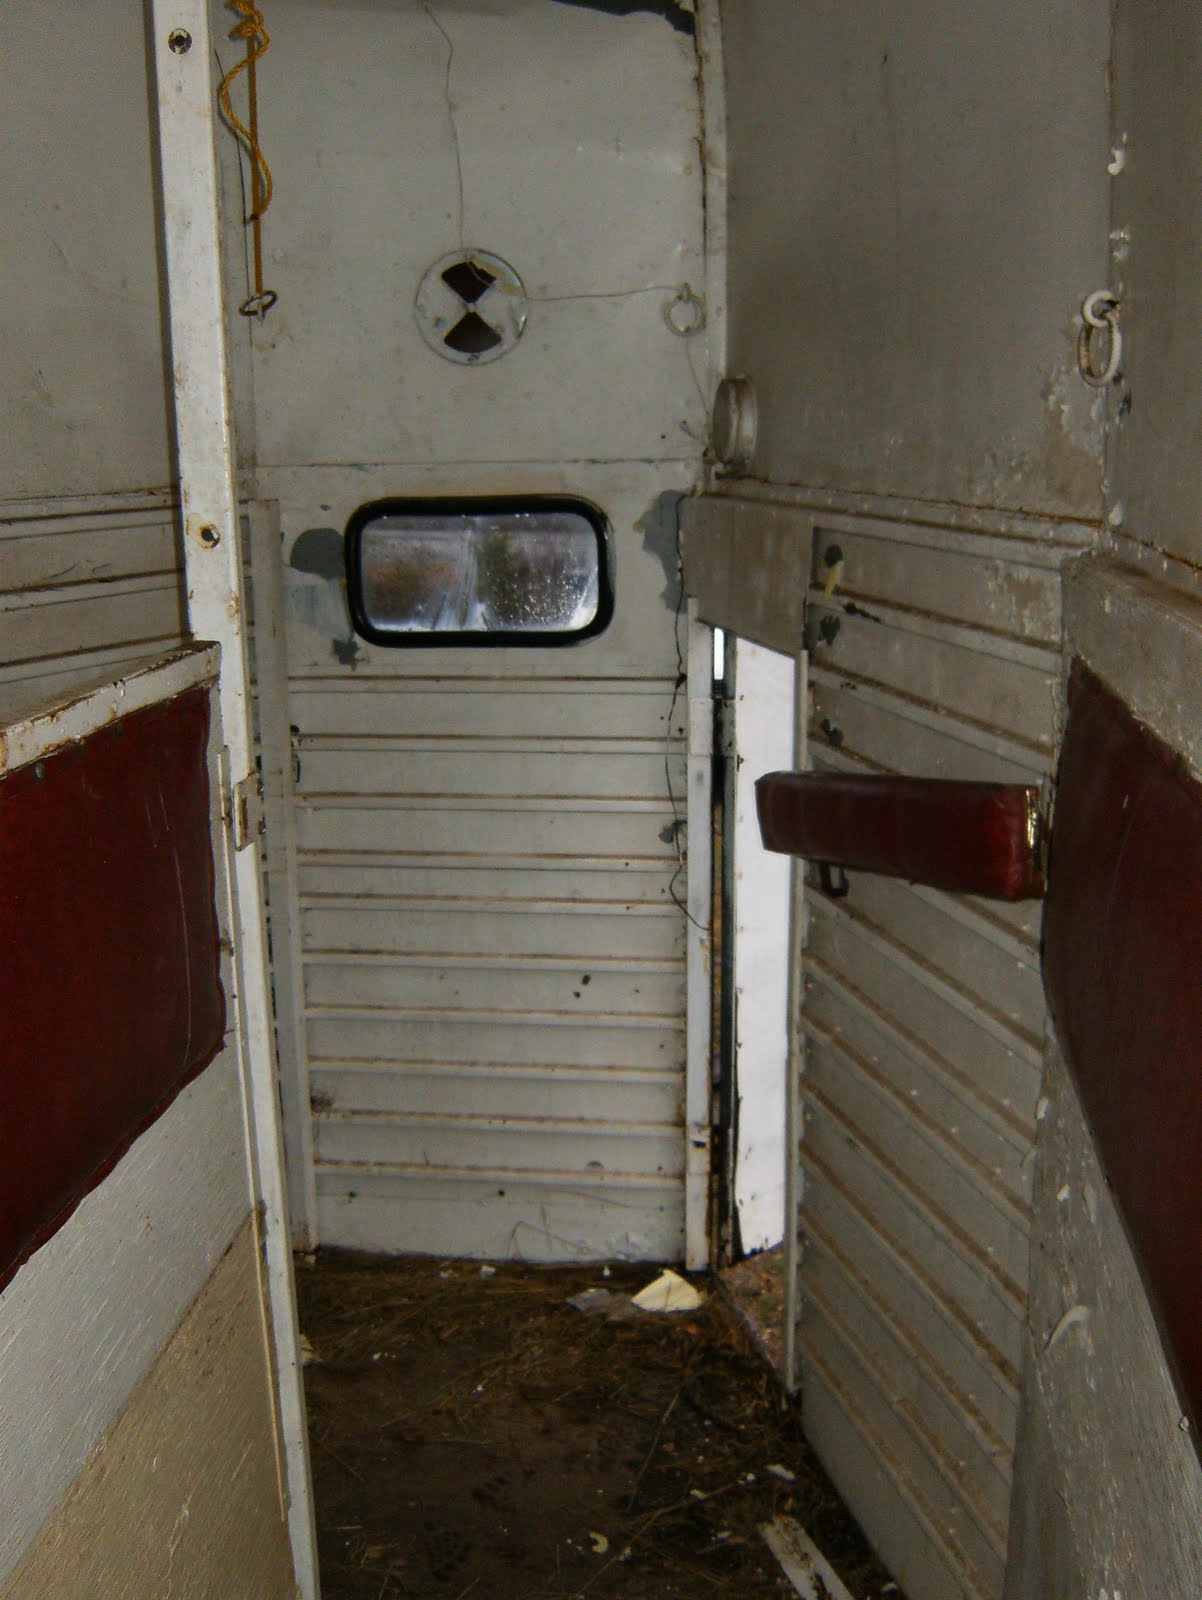 Imperatore Horse Vans For Sale - We have just purchased a 1976 two horse pride bumper pull horse trailer april 2010 it is 1500 kgs it is black with a red top made of galvanized steel